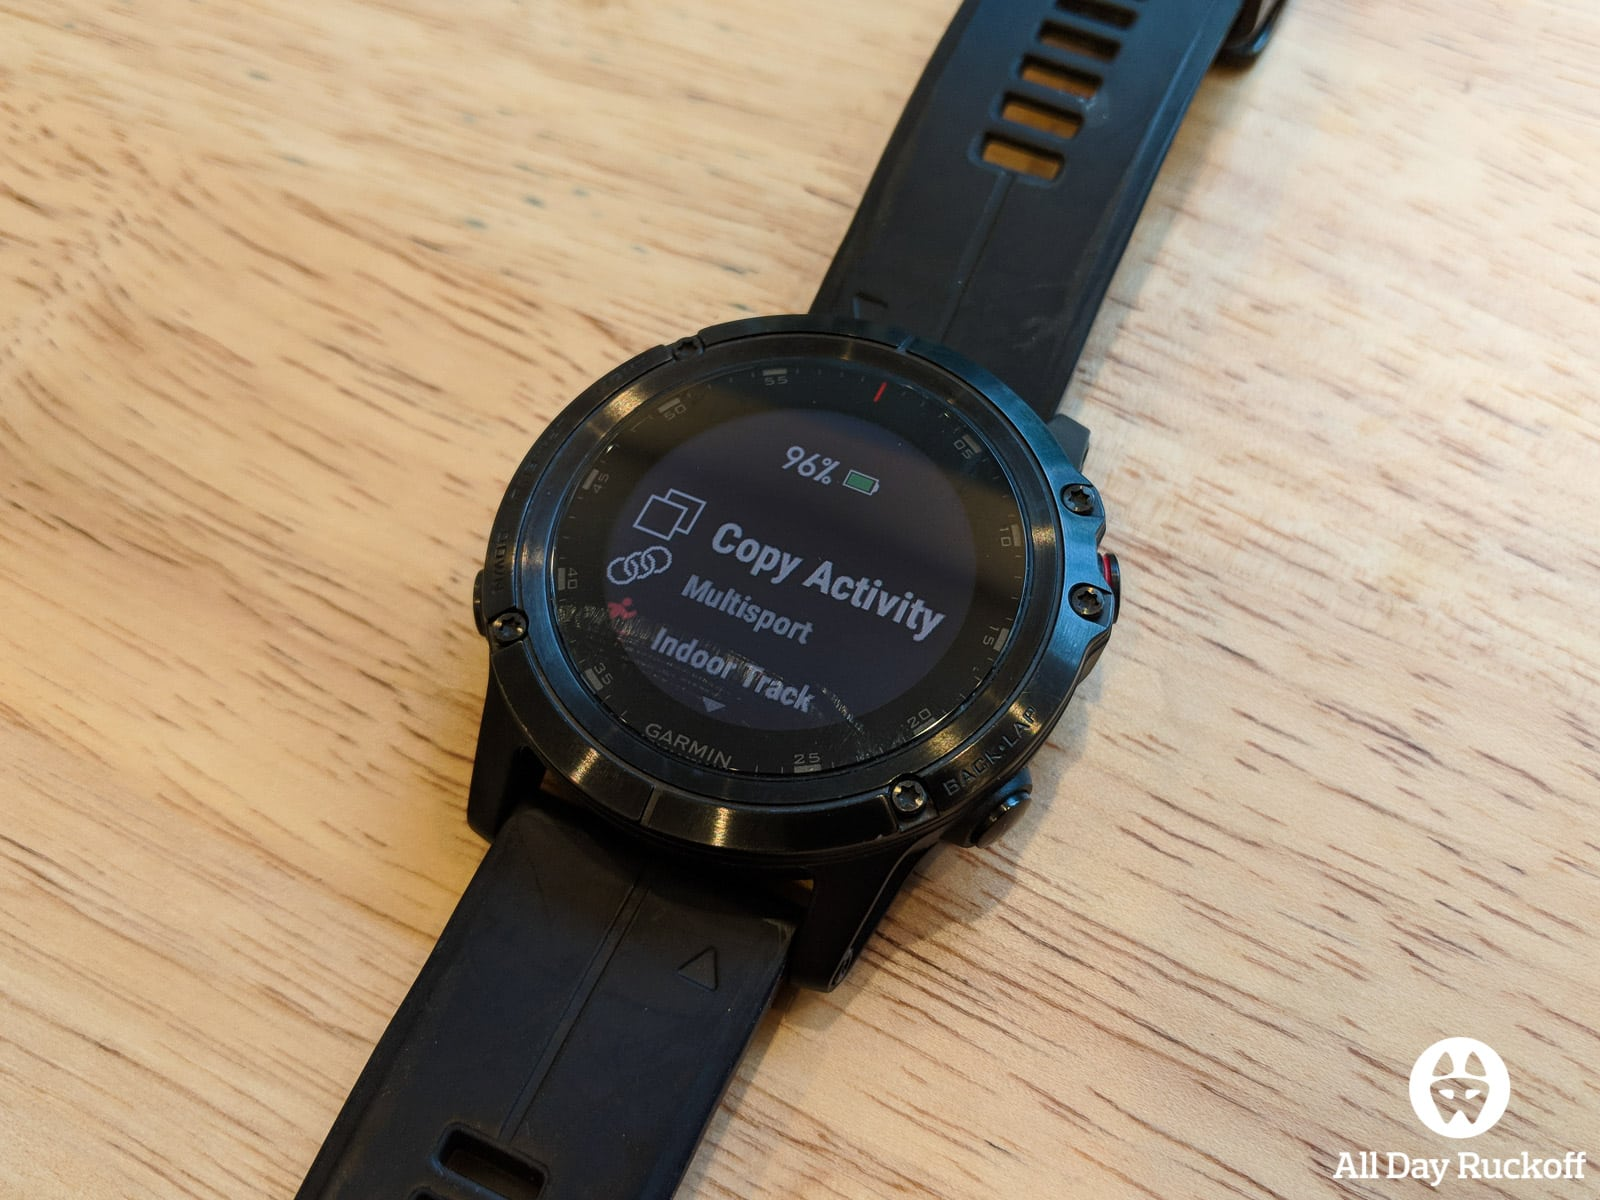 Setting up a Garmin Fenix for Rucking - All Day Ruckoff